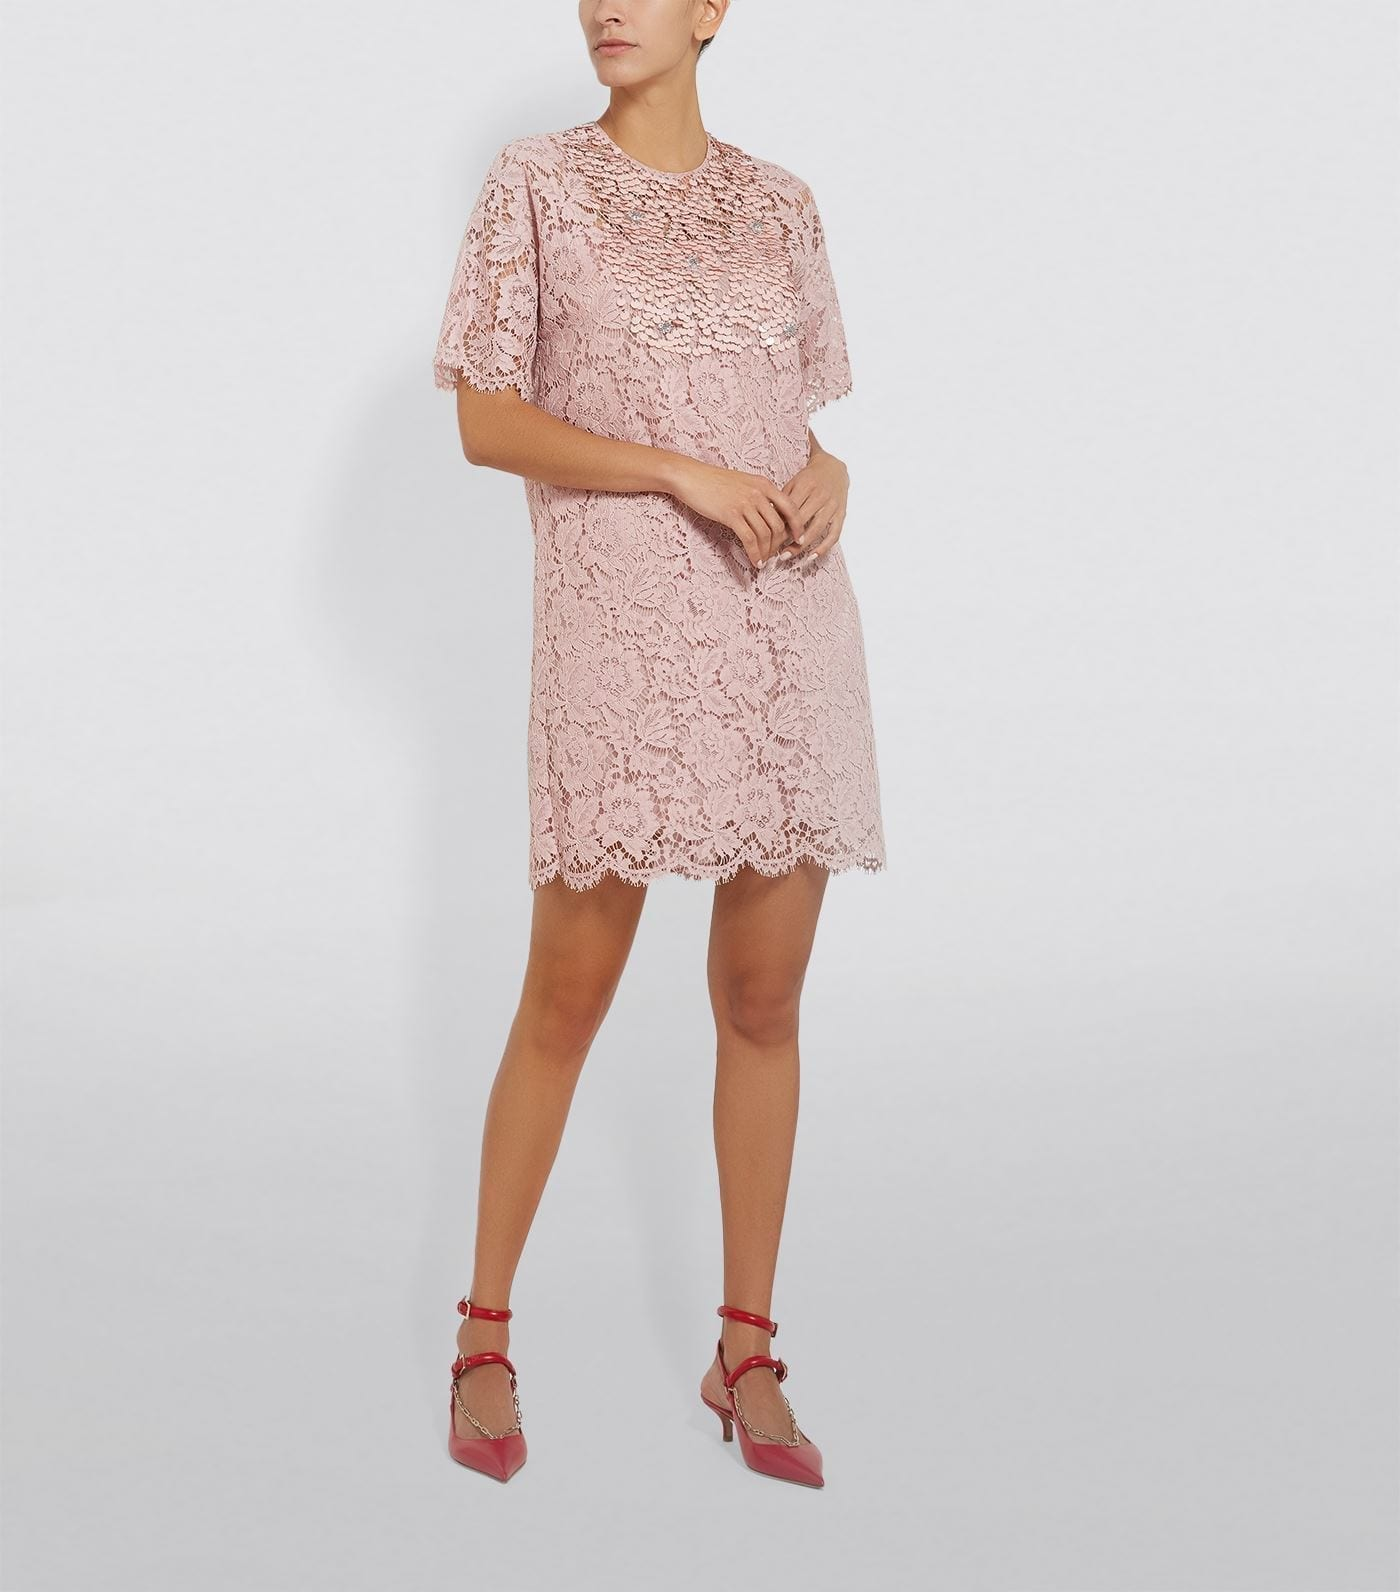 VALENTINO Floral Lace Mini Dress